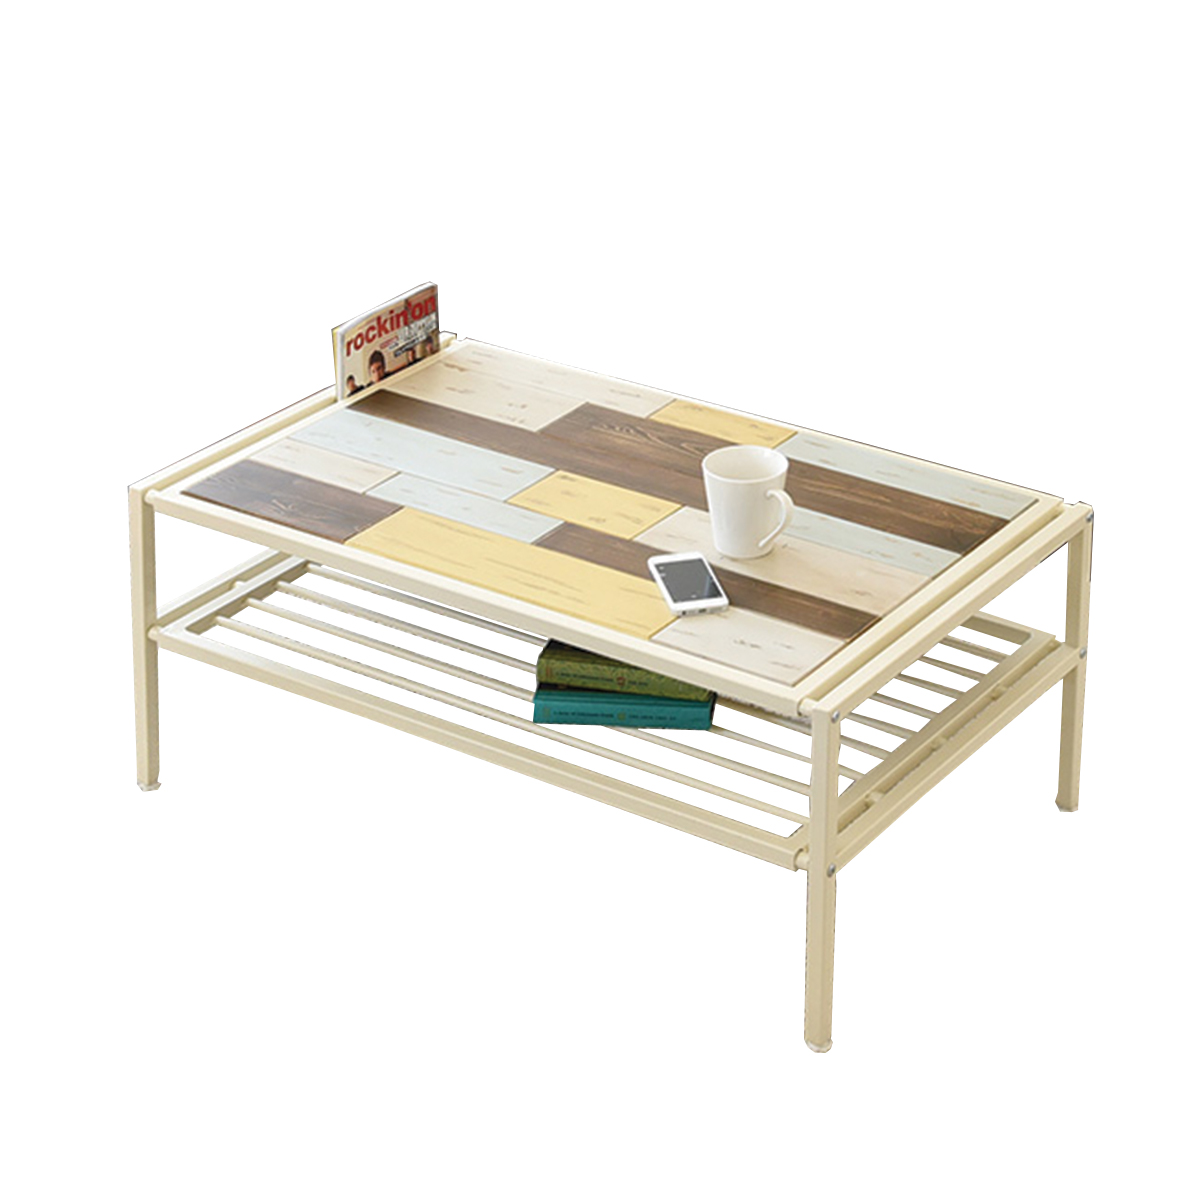 florence-coffee-table-modelkfp-fcoft